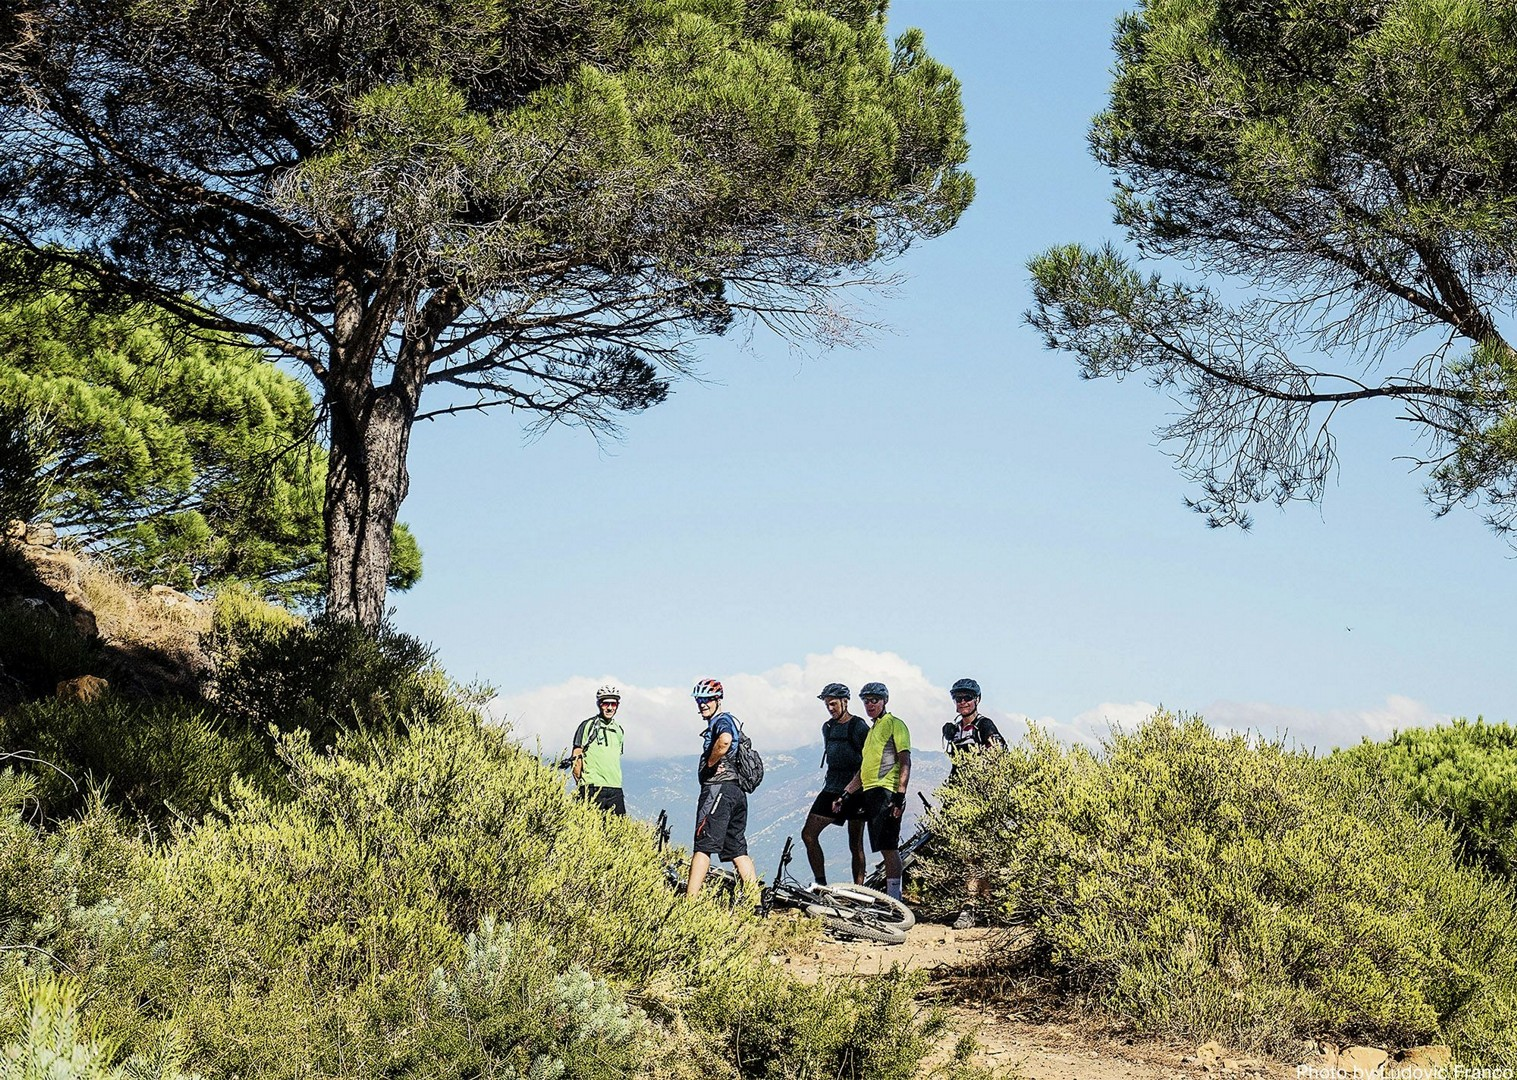 stunning-sights-mountain-biking-in-spain-andalucia-skedaddle.jpg - Spain - Awesome Andalucia - Guided Mountain Bike Holiday - Mountain Biking